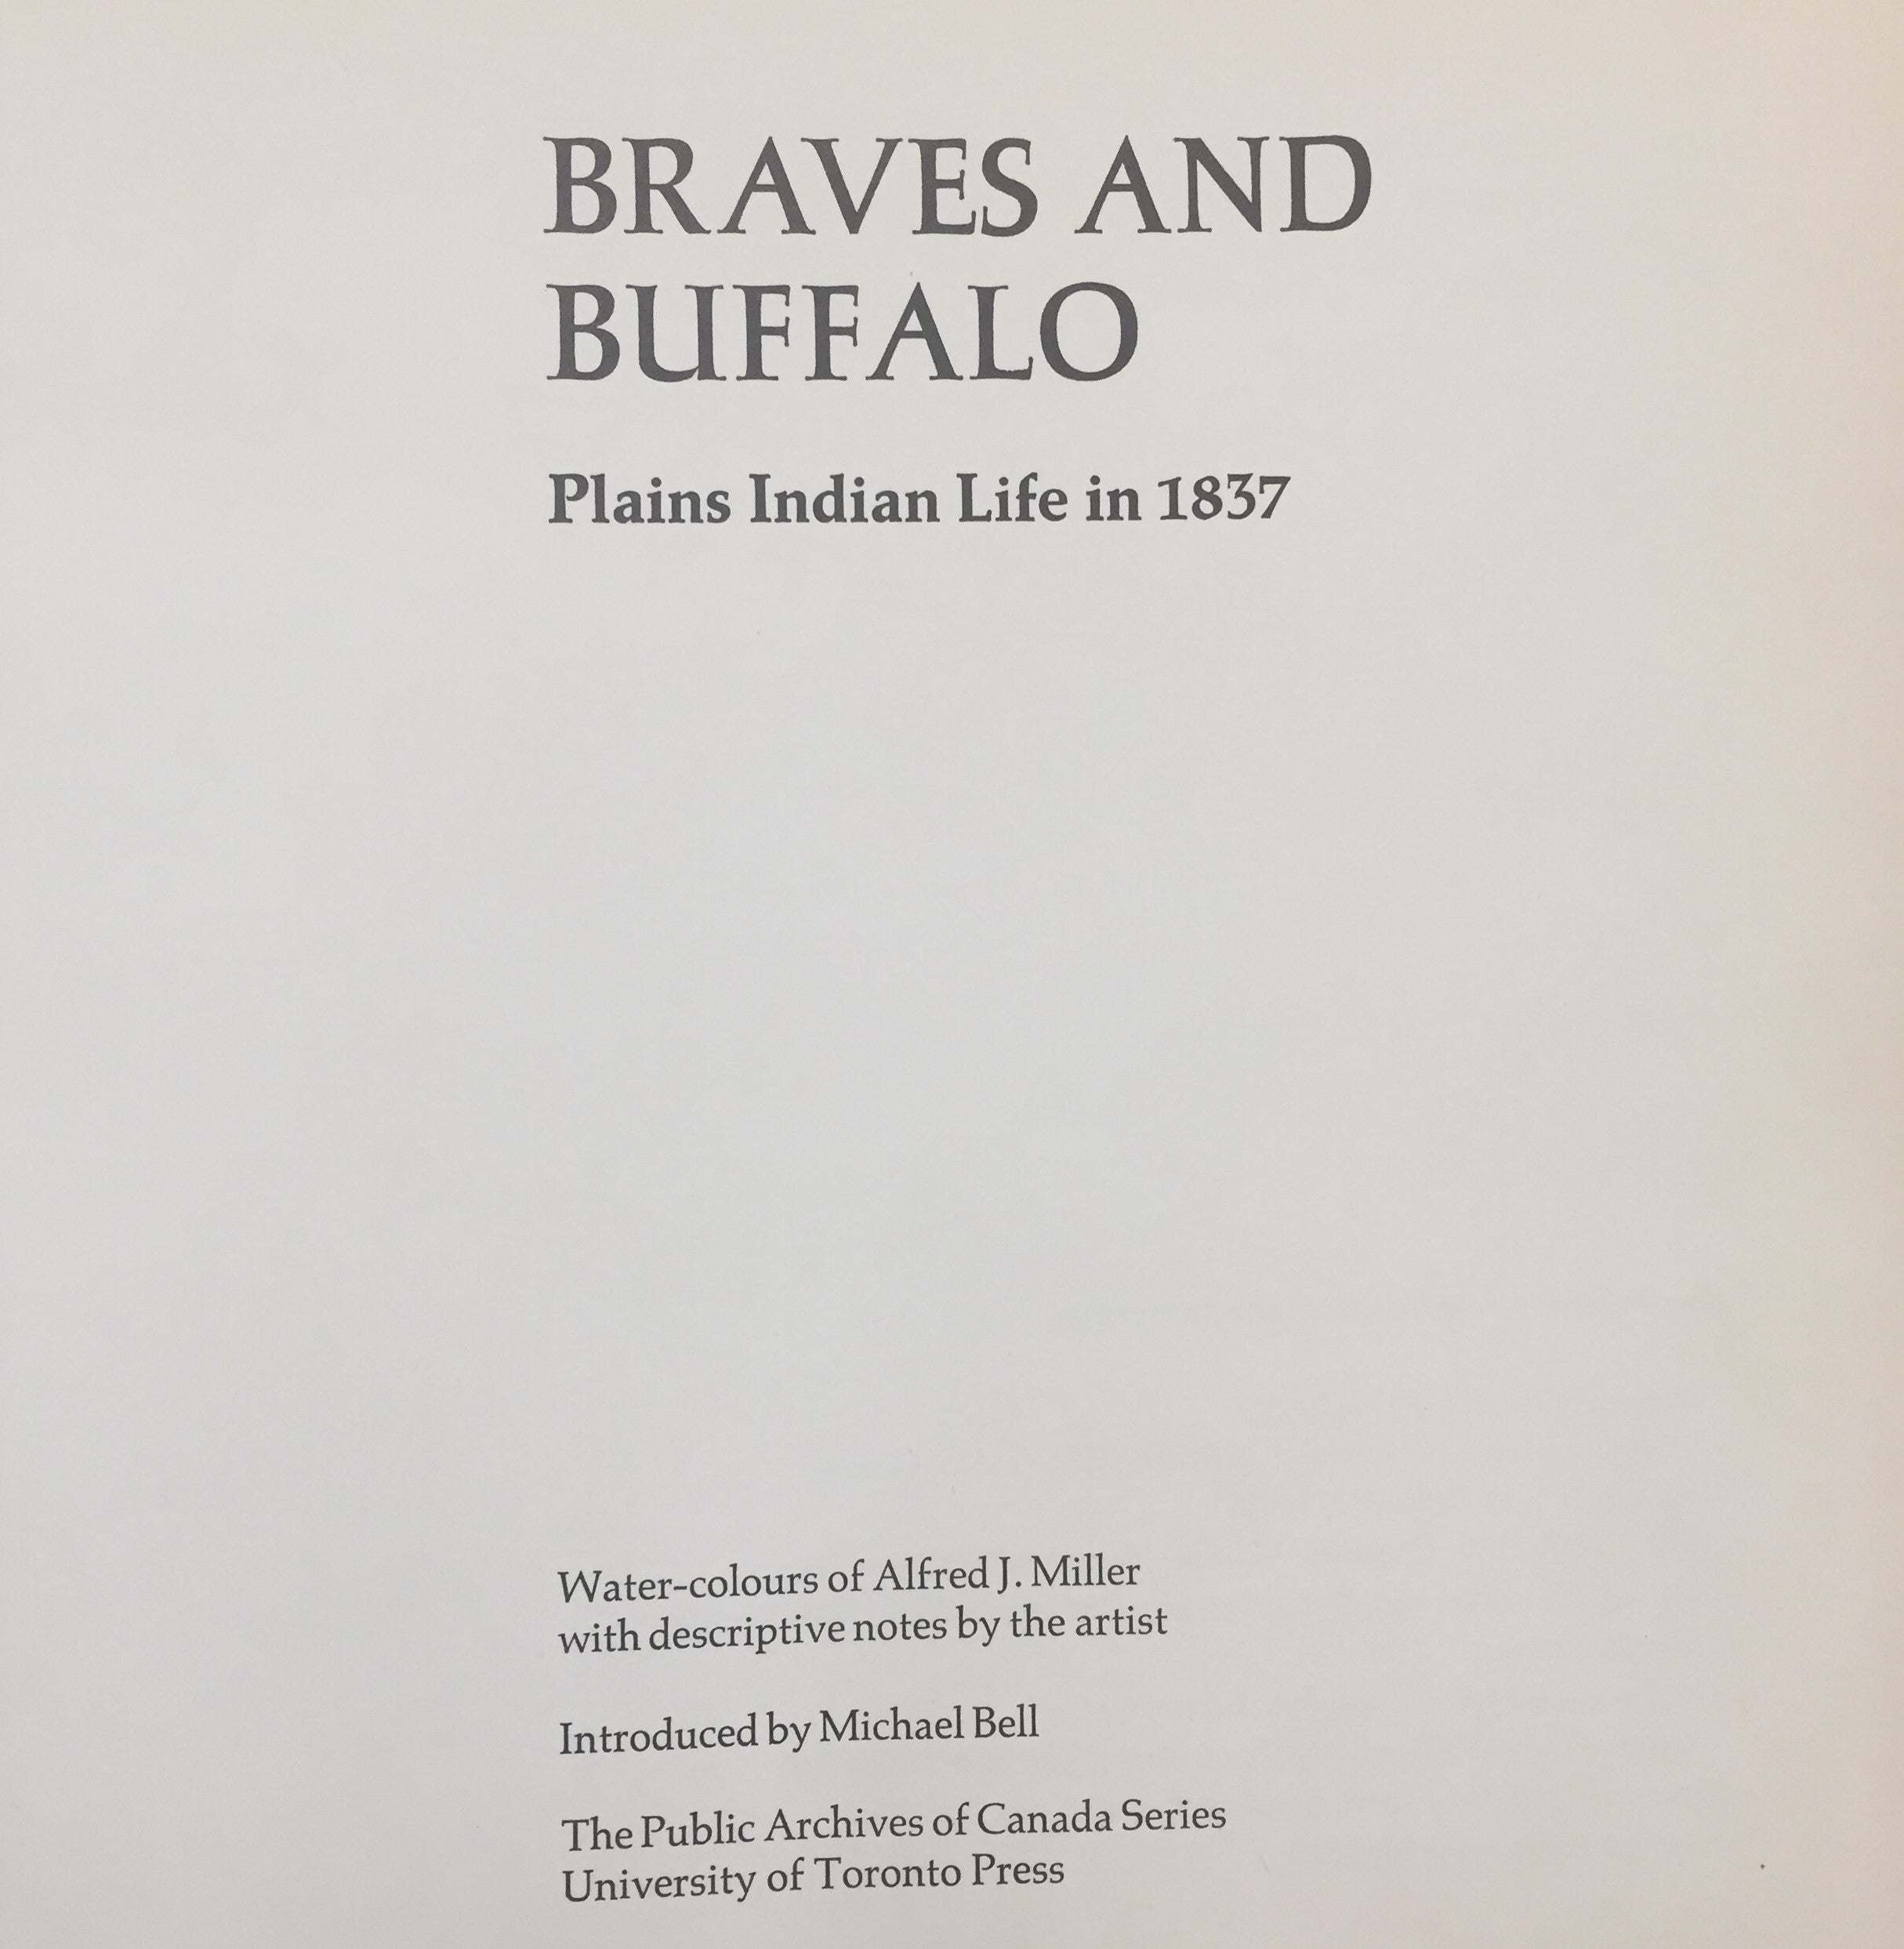 BOOKS - Braves and Buffalo by Alfred J. Miller